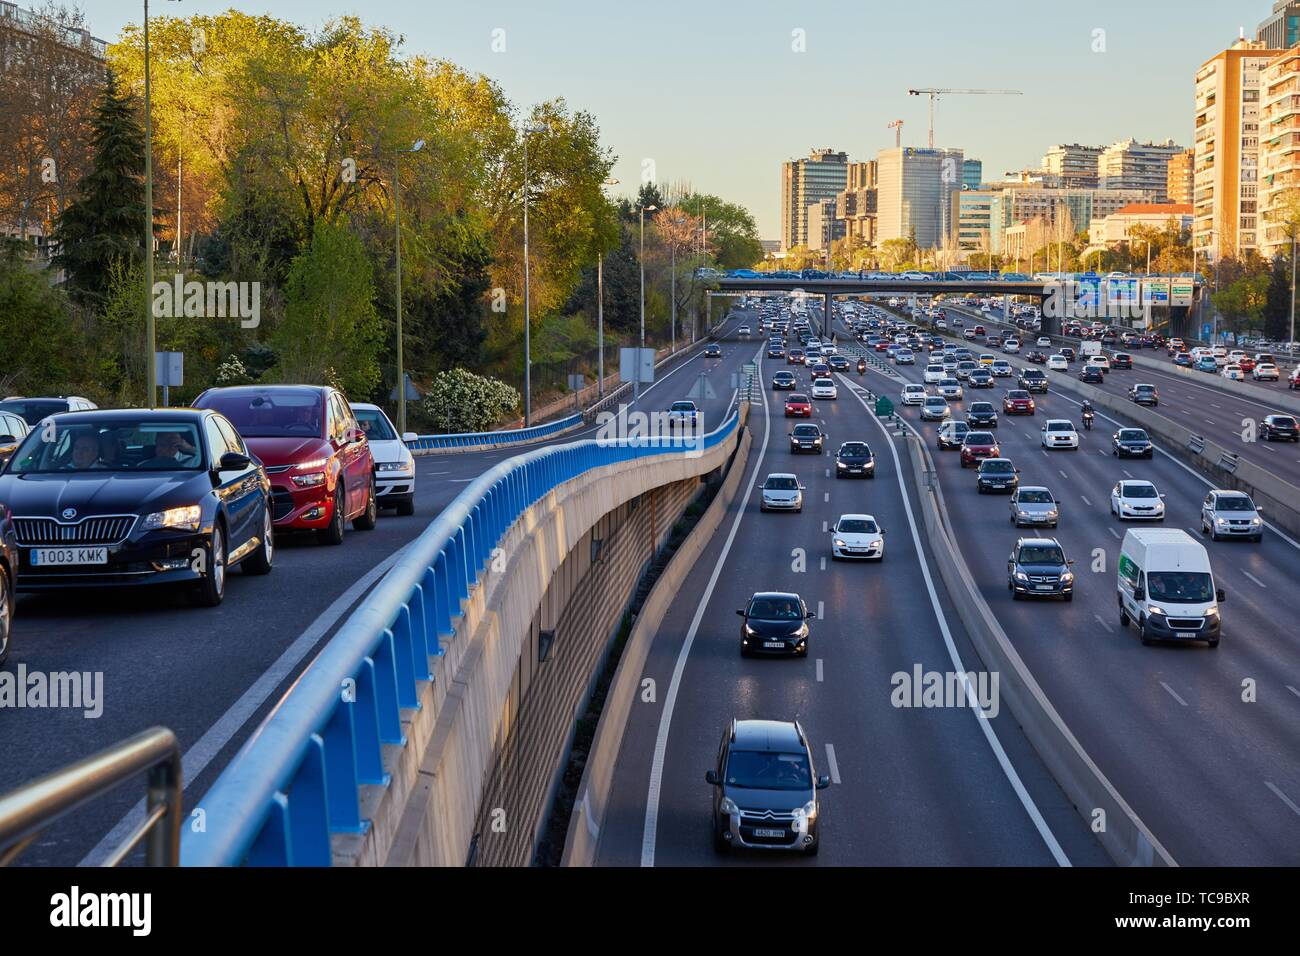 Traffic, M-30 motorway, Las Ventas Bridge, Madrid, Spain, Europe - Stock Image